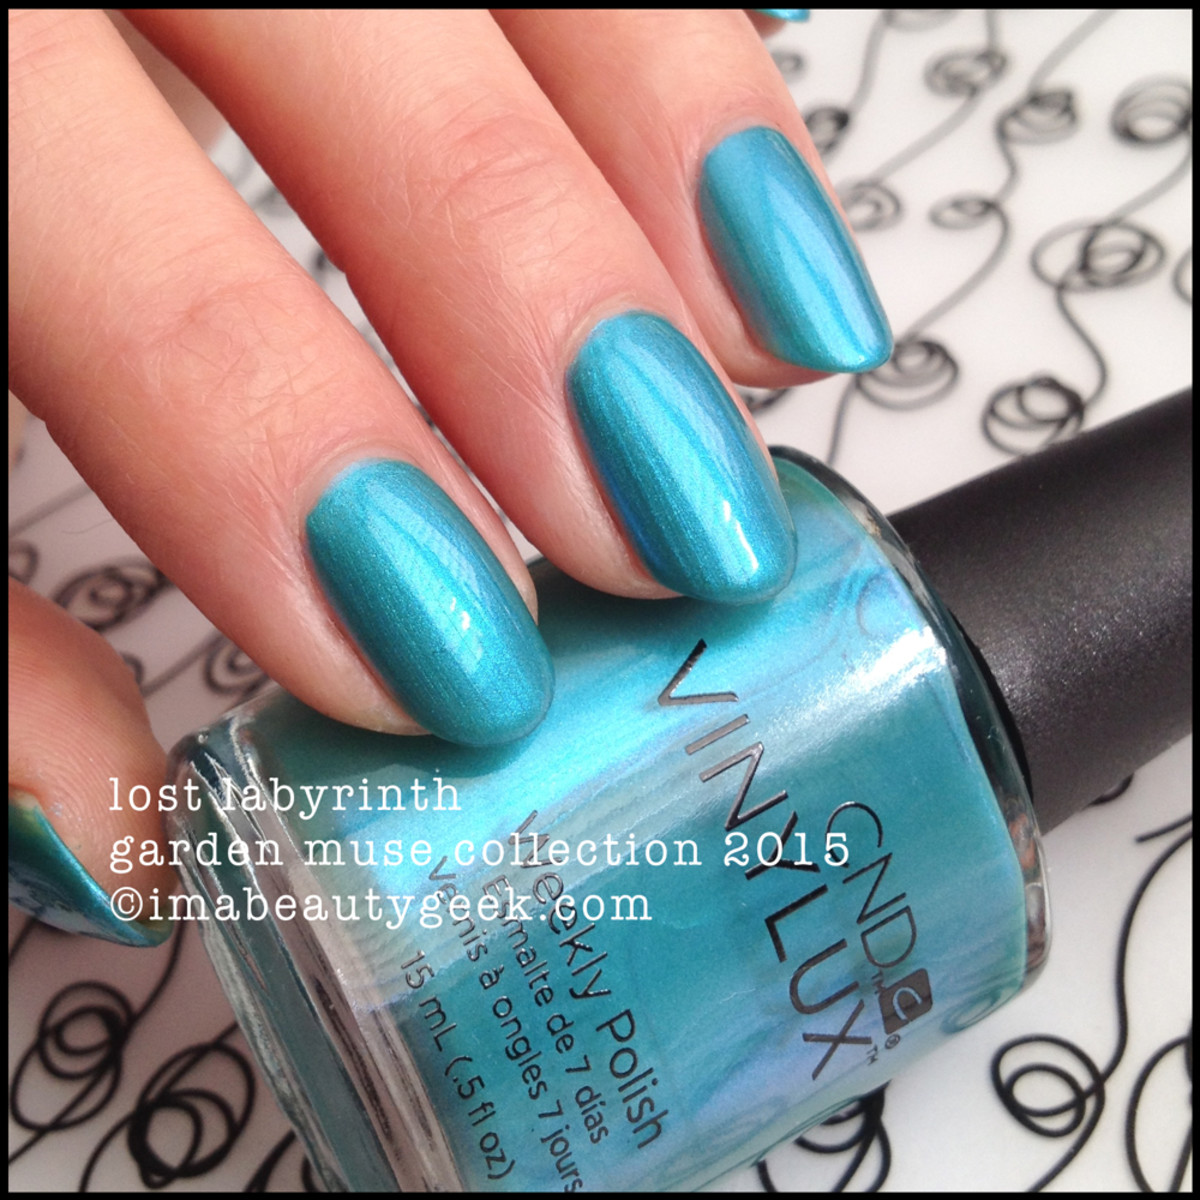 CND Garden Muse Collection 2015_Vinylux Lost Labyrinth